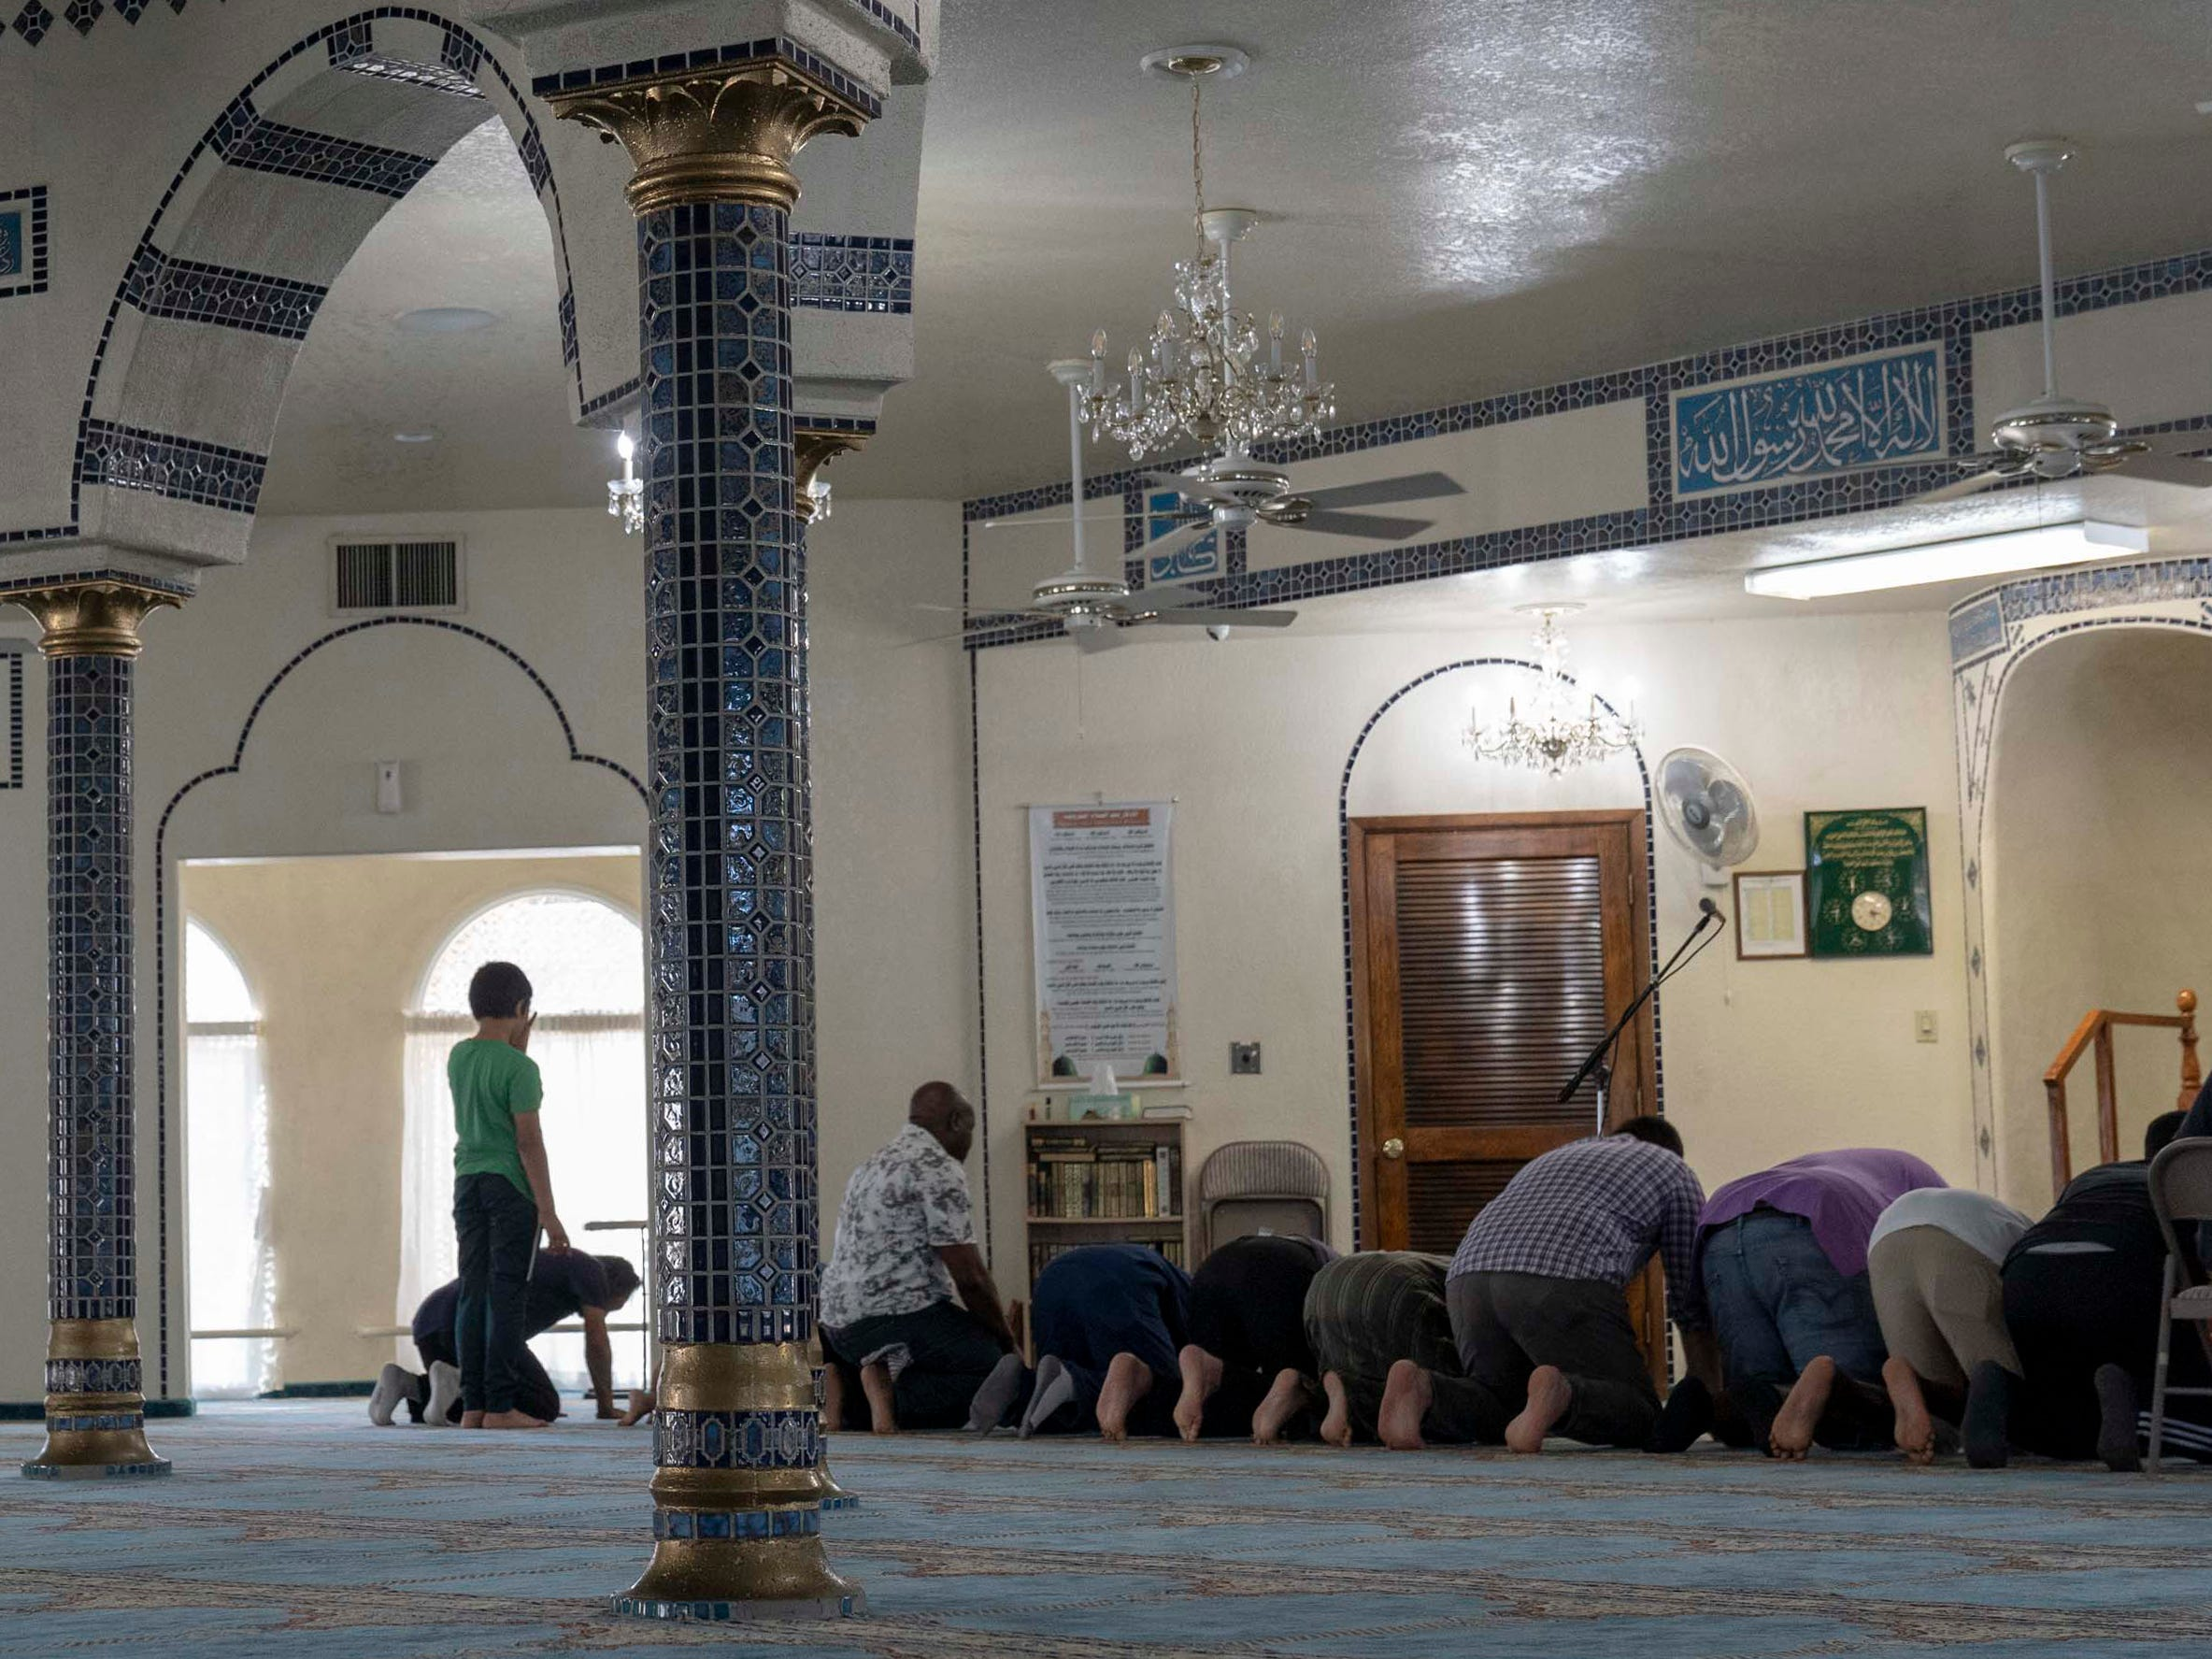 Muslim men kneel during the evening prayer at Tempe Islamic Cultural Center.